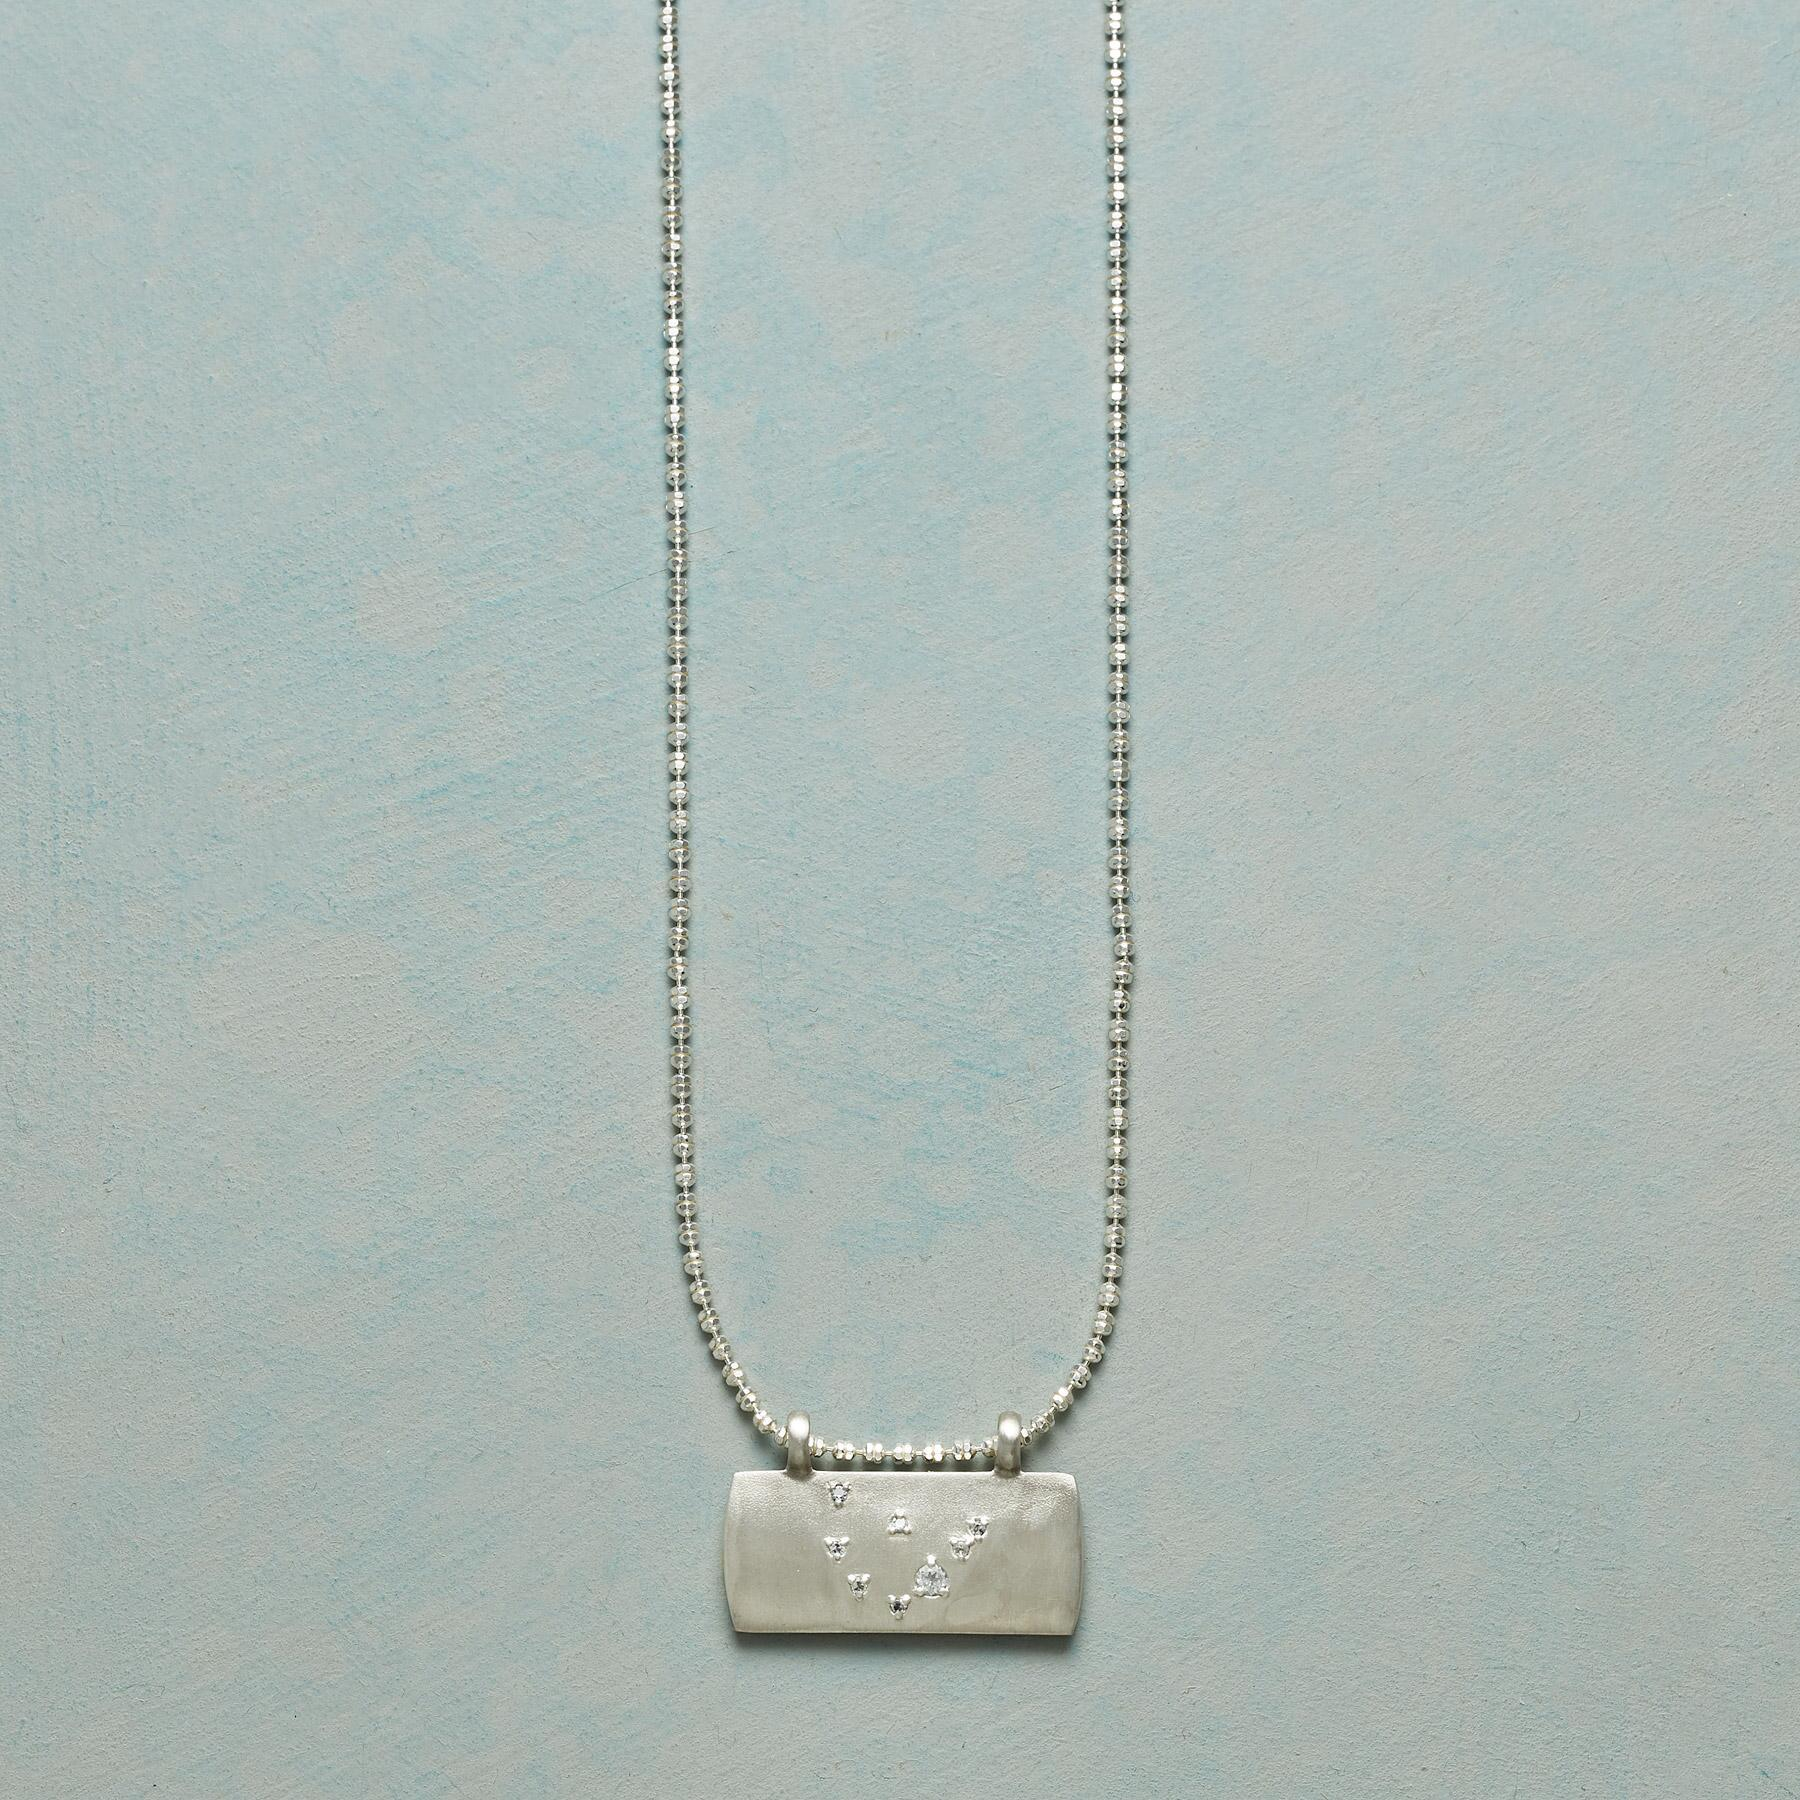 STERLING SILVER ASTROLOGICAL PENDANT NECKLACE: View 1